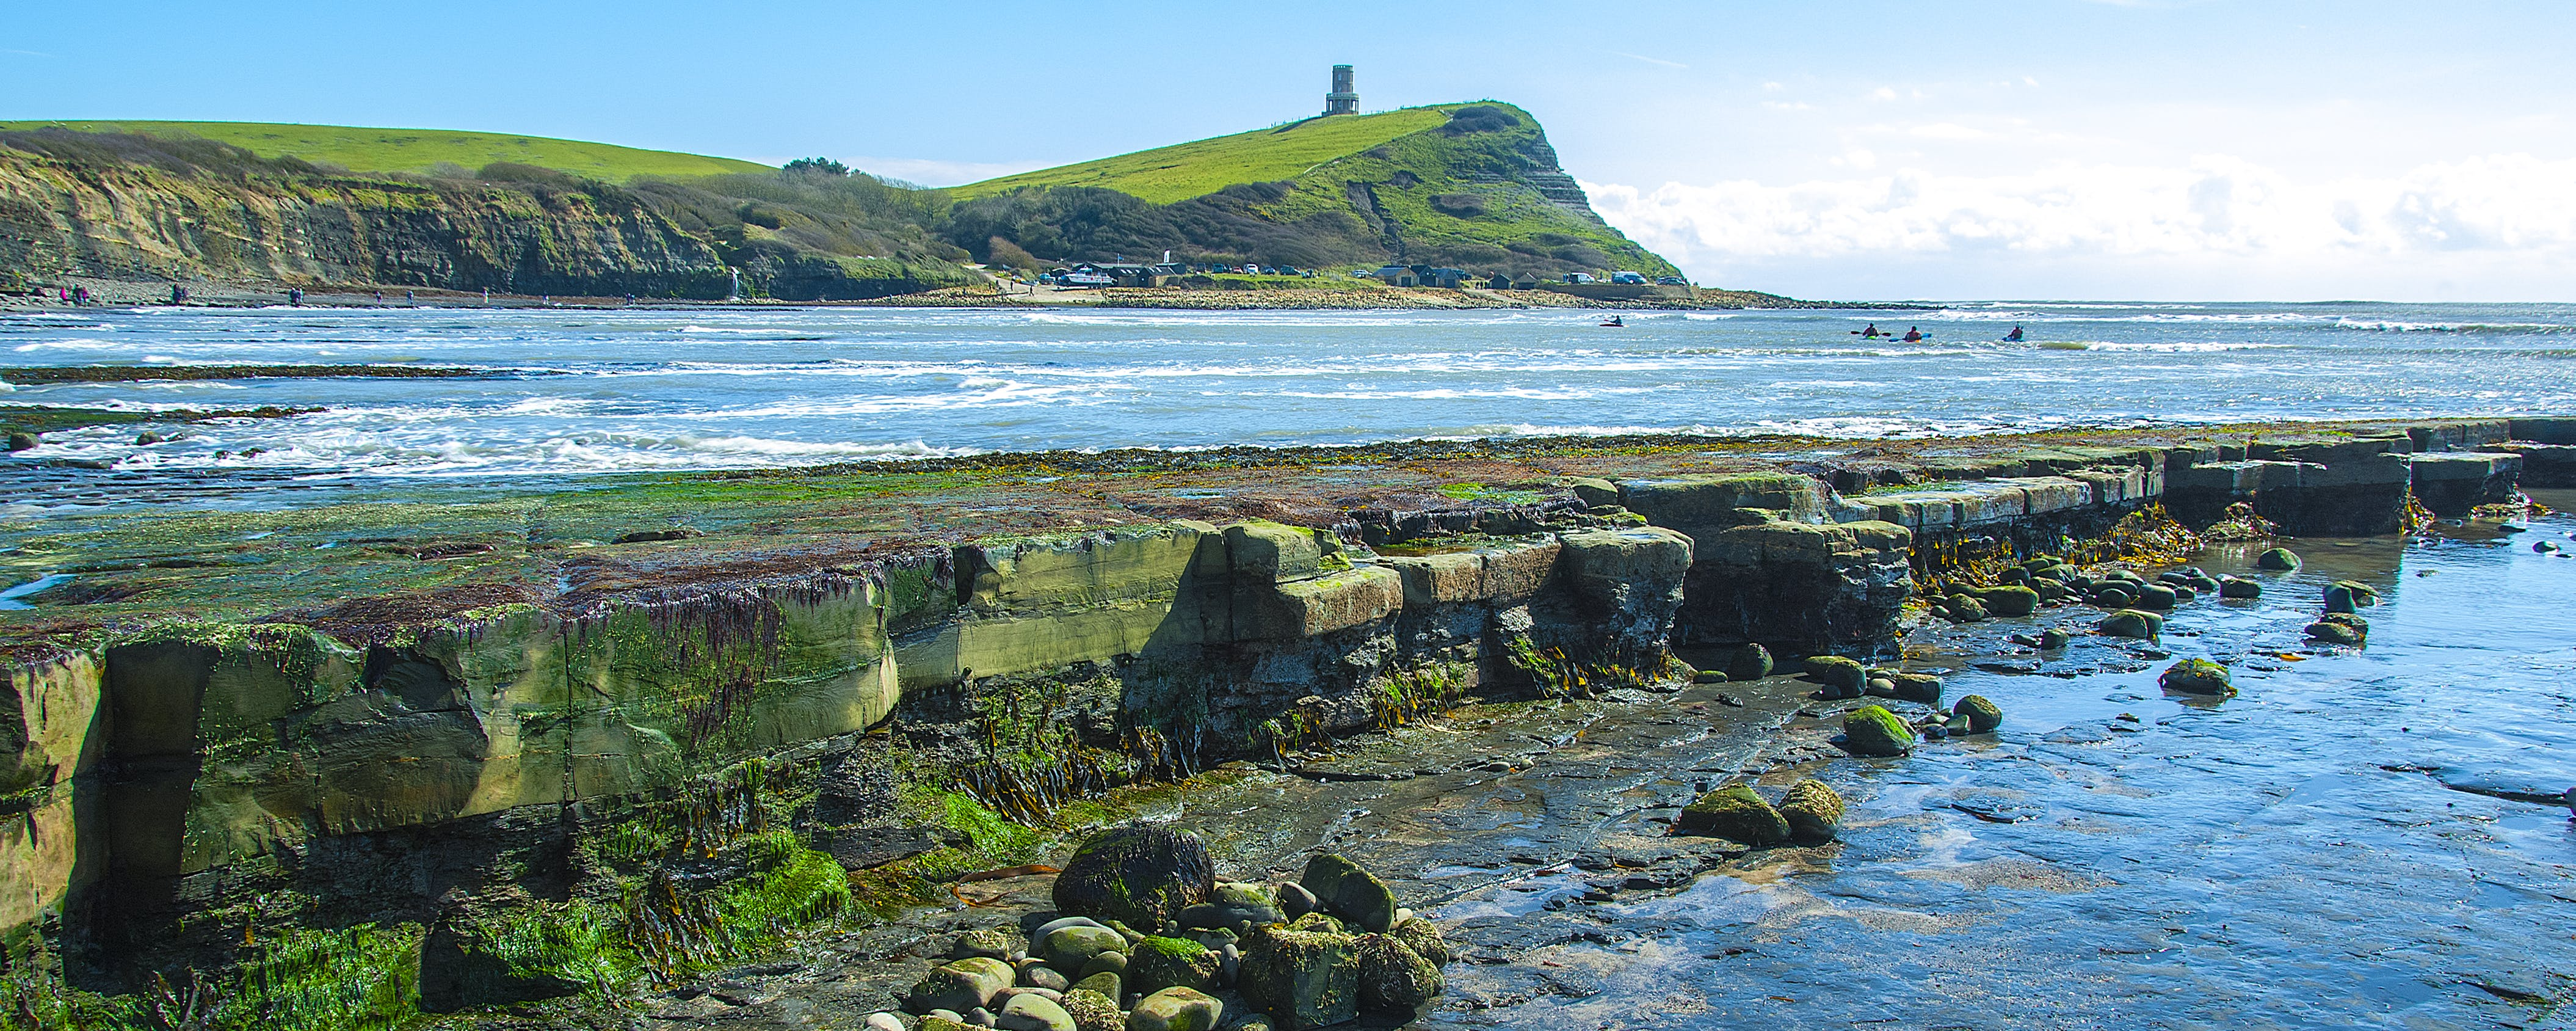 Free stock photo of kimmeridge bay